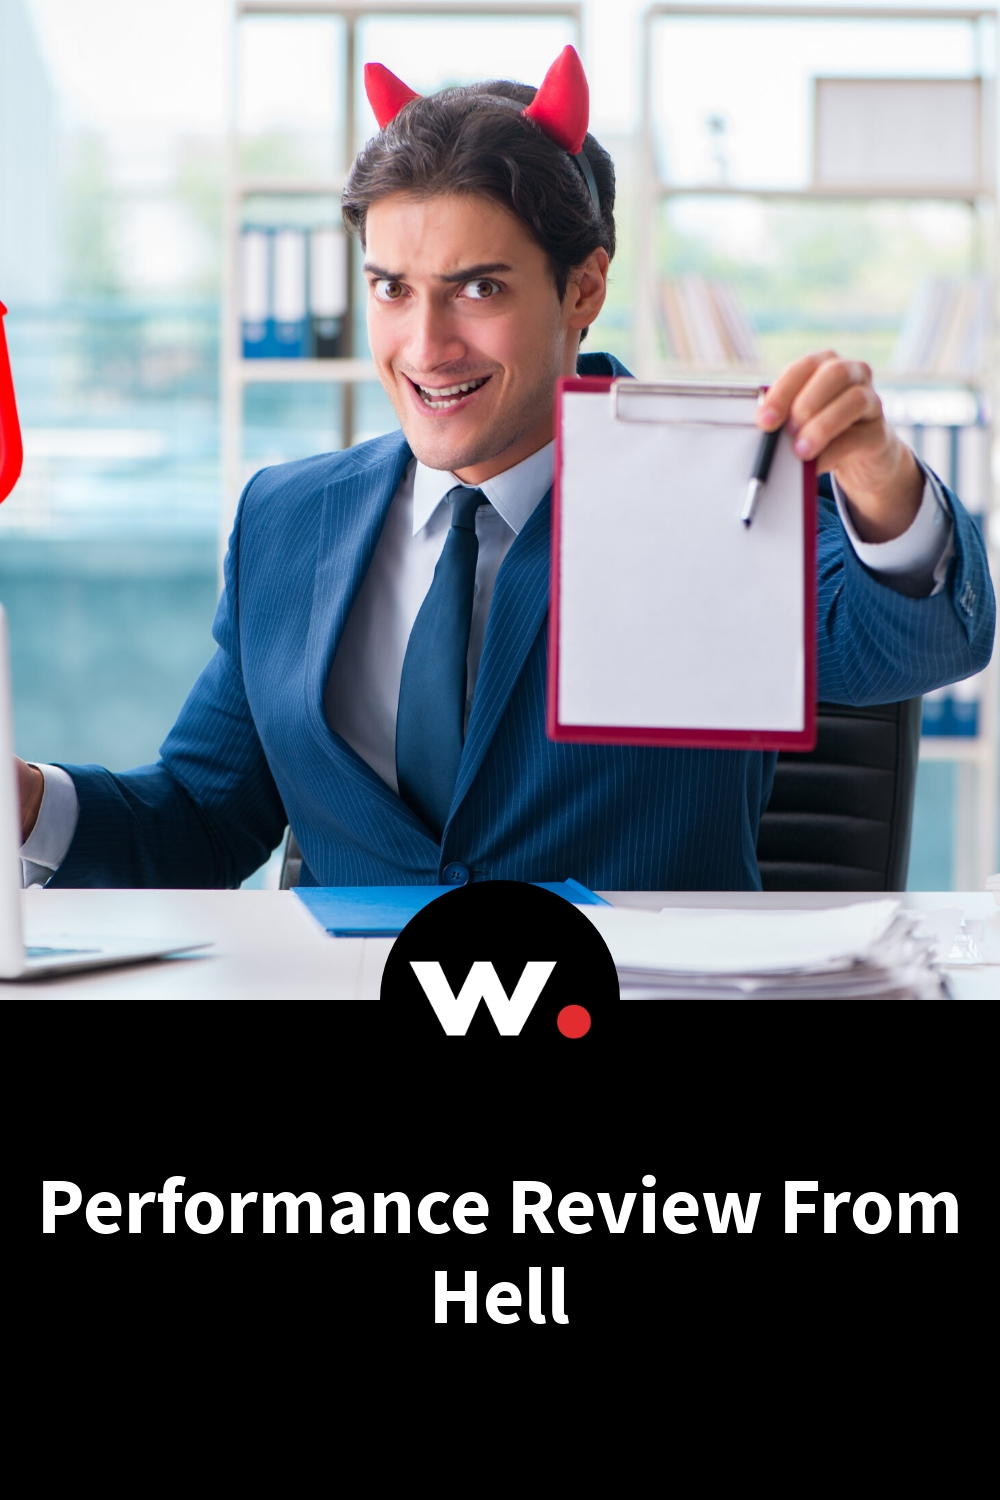 Performance Review From Hell